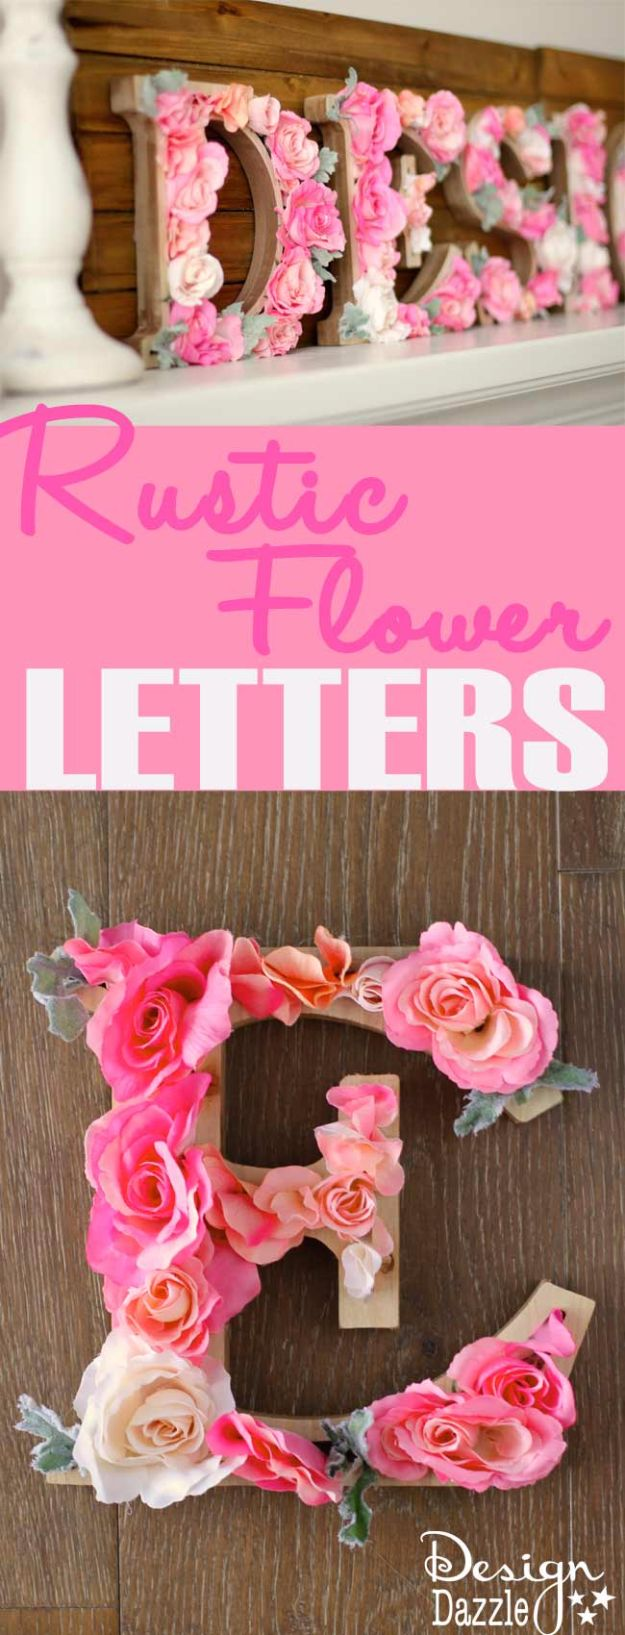 DIY Wall Letters and Word Signs - DIY Rustic Letters With Flowers - Initials Wall Art for Creative Home Decor Ideas - Cool Architectural Letter Projects and Wall Art Tutorials for Living Room Decor, Bedroom Ideas. Girl or Boy Nursery. Paint, Glitter, String Art, Easy Cardboard and Rustic Wooden Ideas - DIY Projects and Crafts by DIY JOY #diysigns #diyideas #diyhomedecor